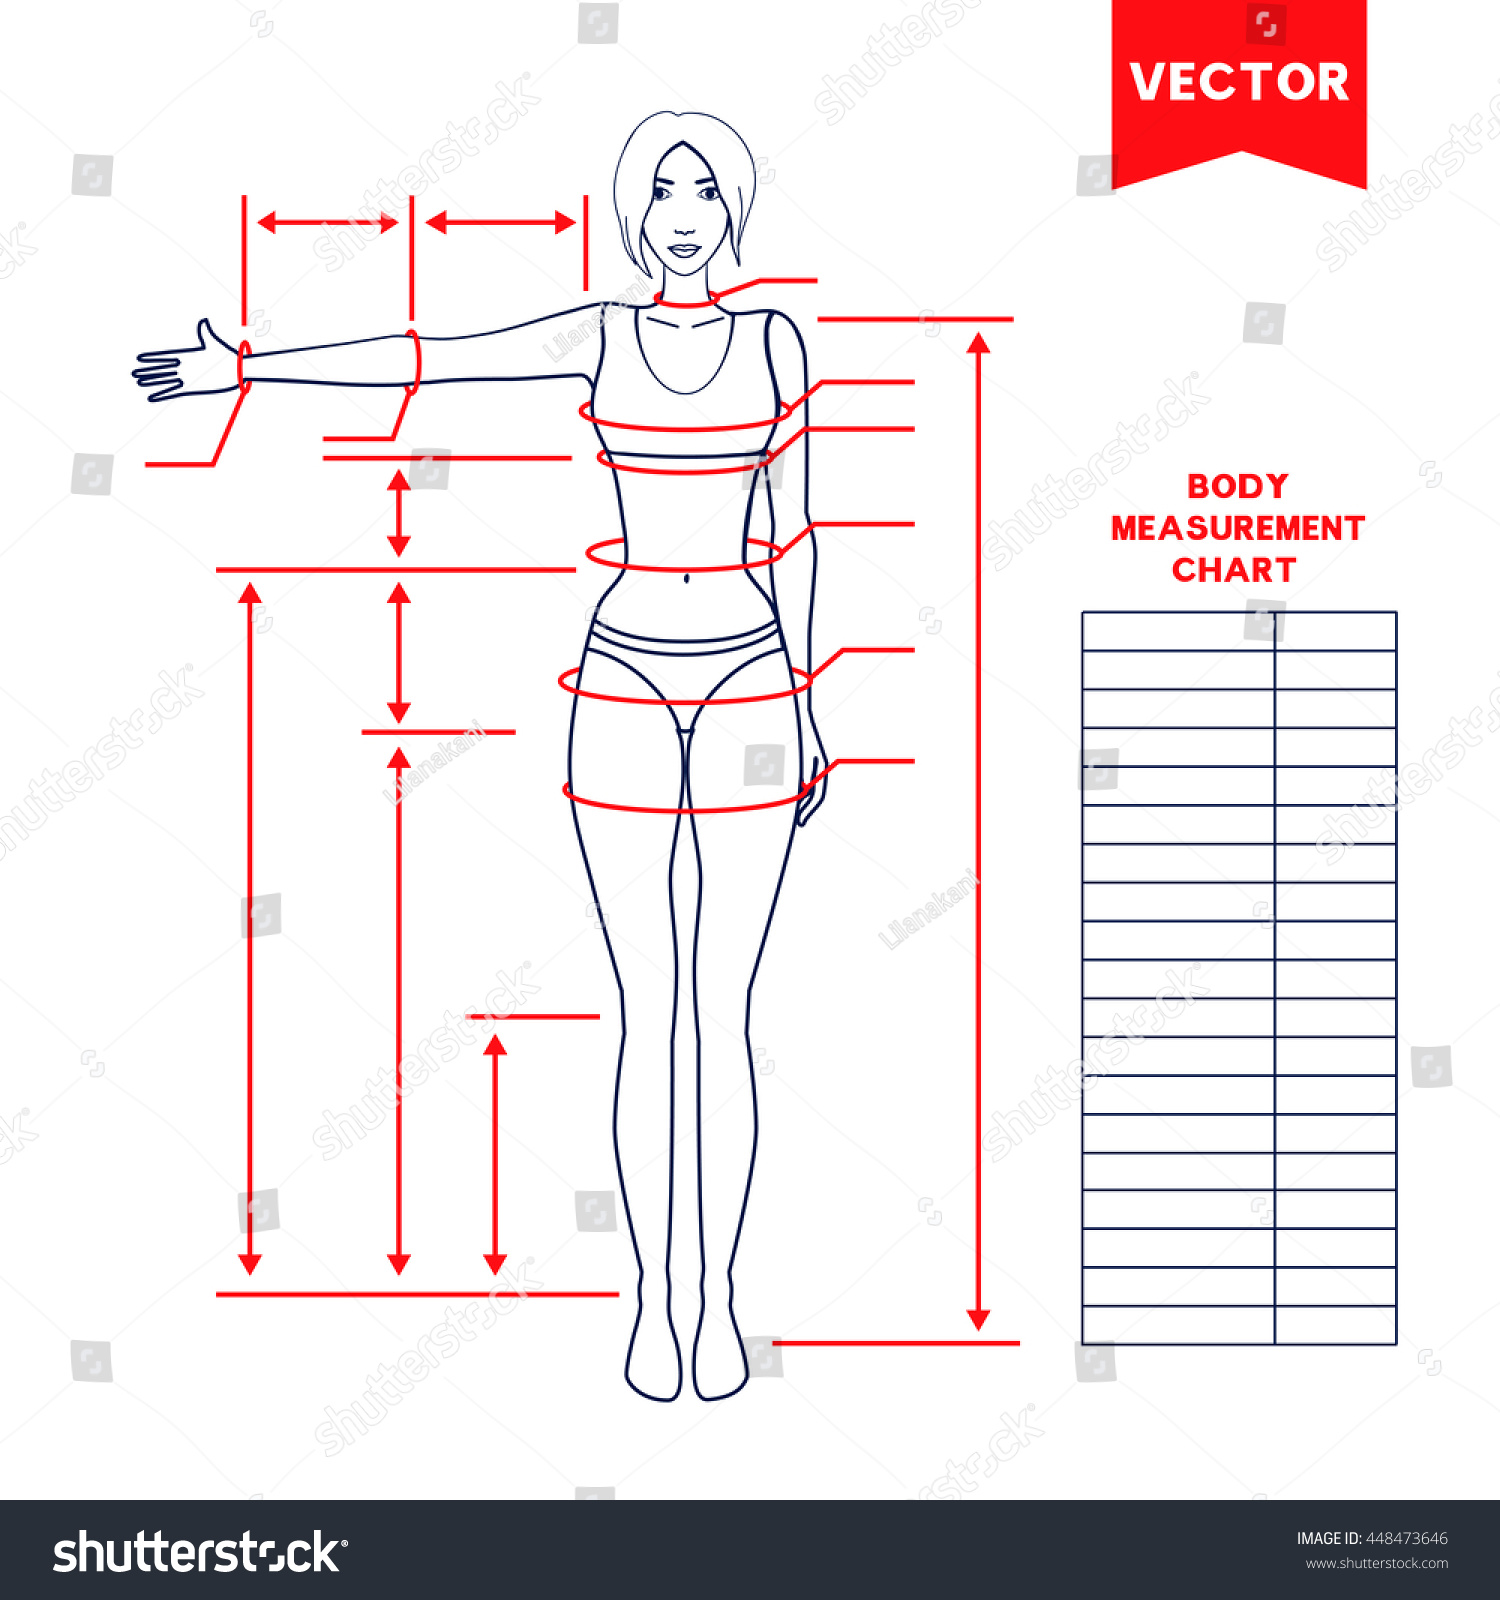 body measurement chart for men